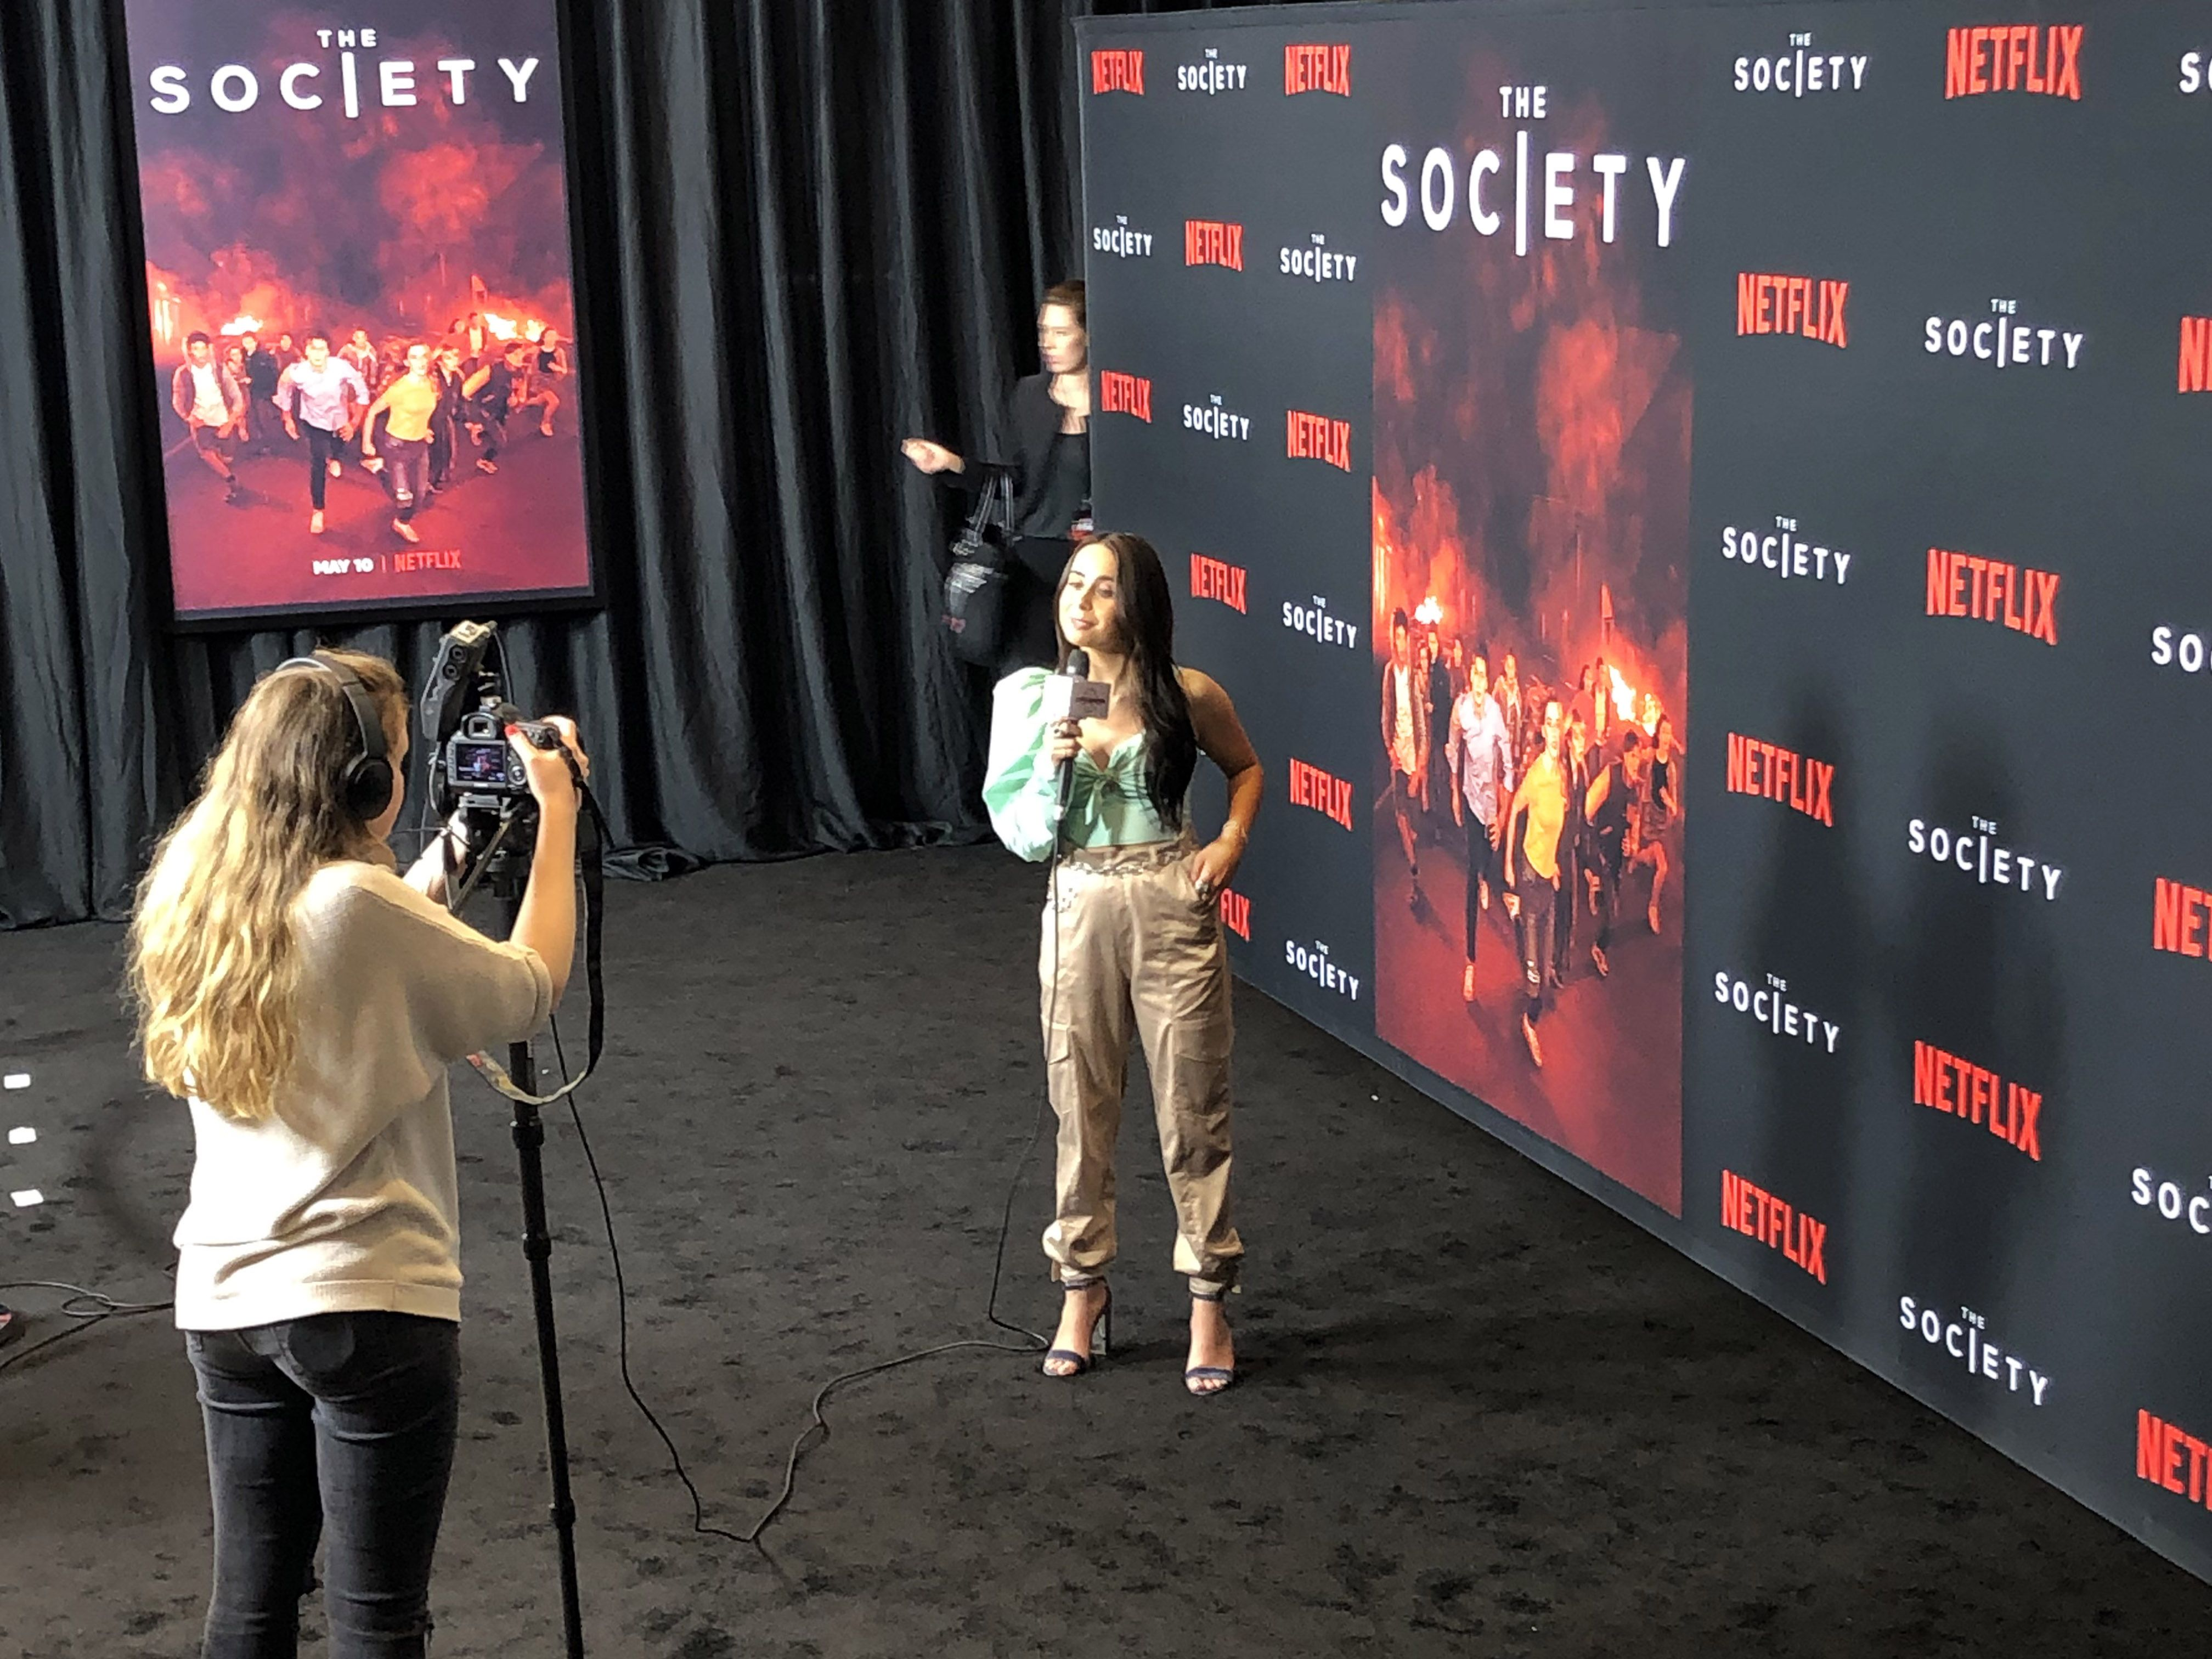 The live interviews at The Society movie premiere from